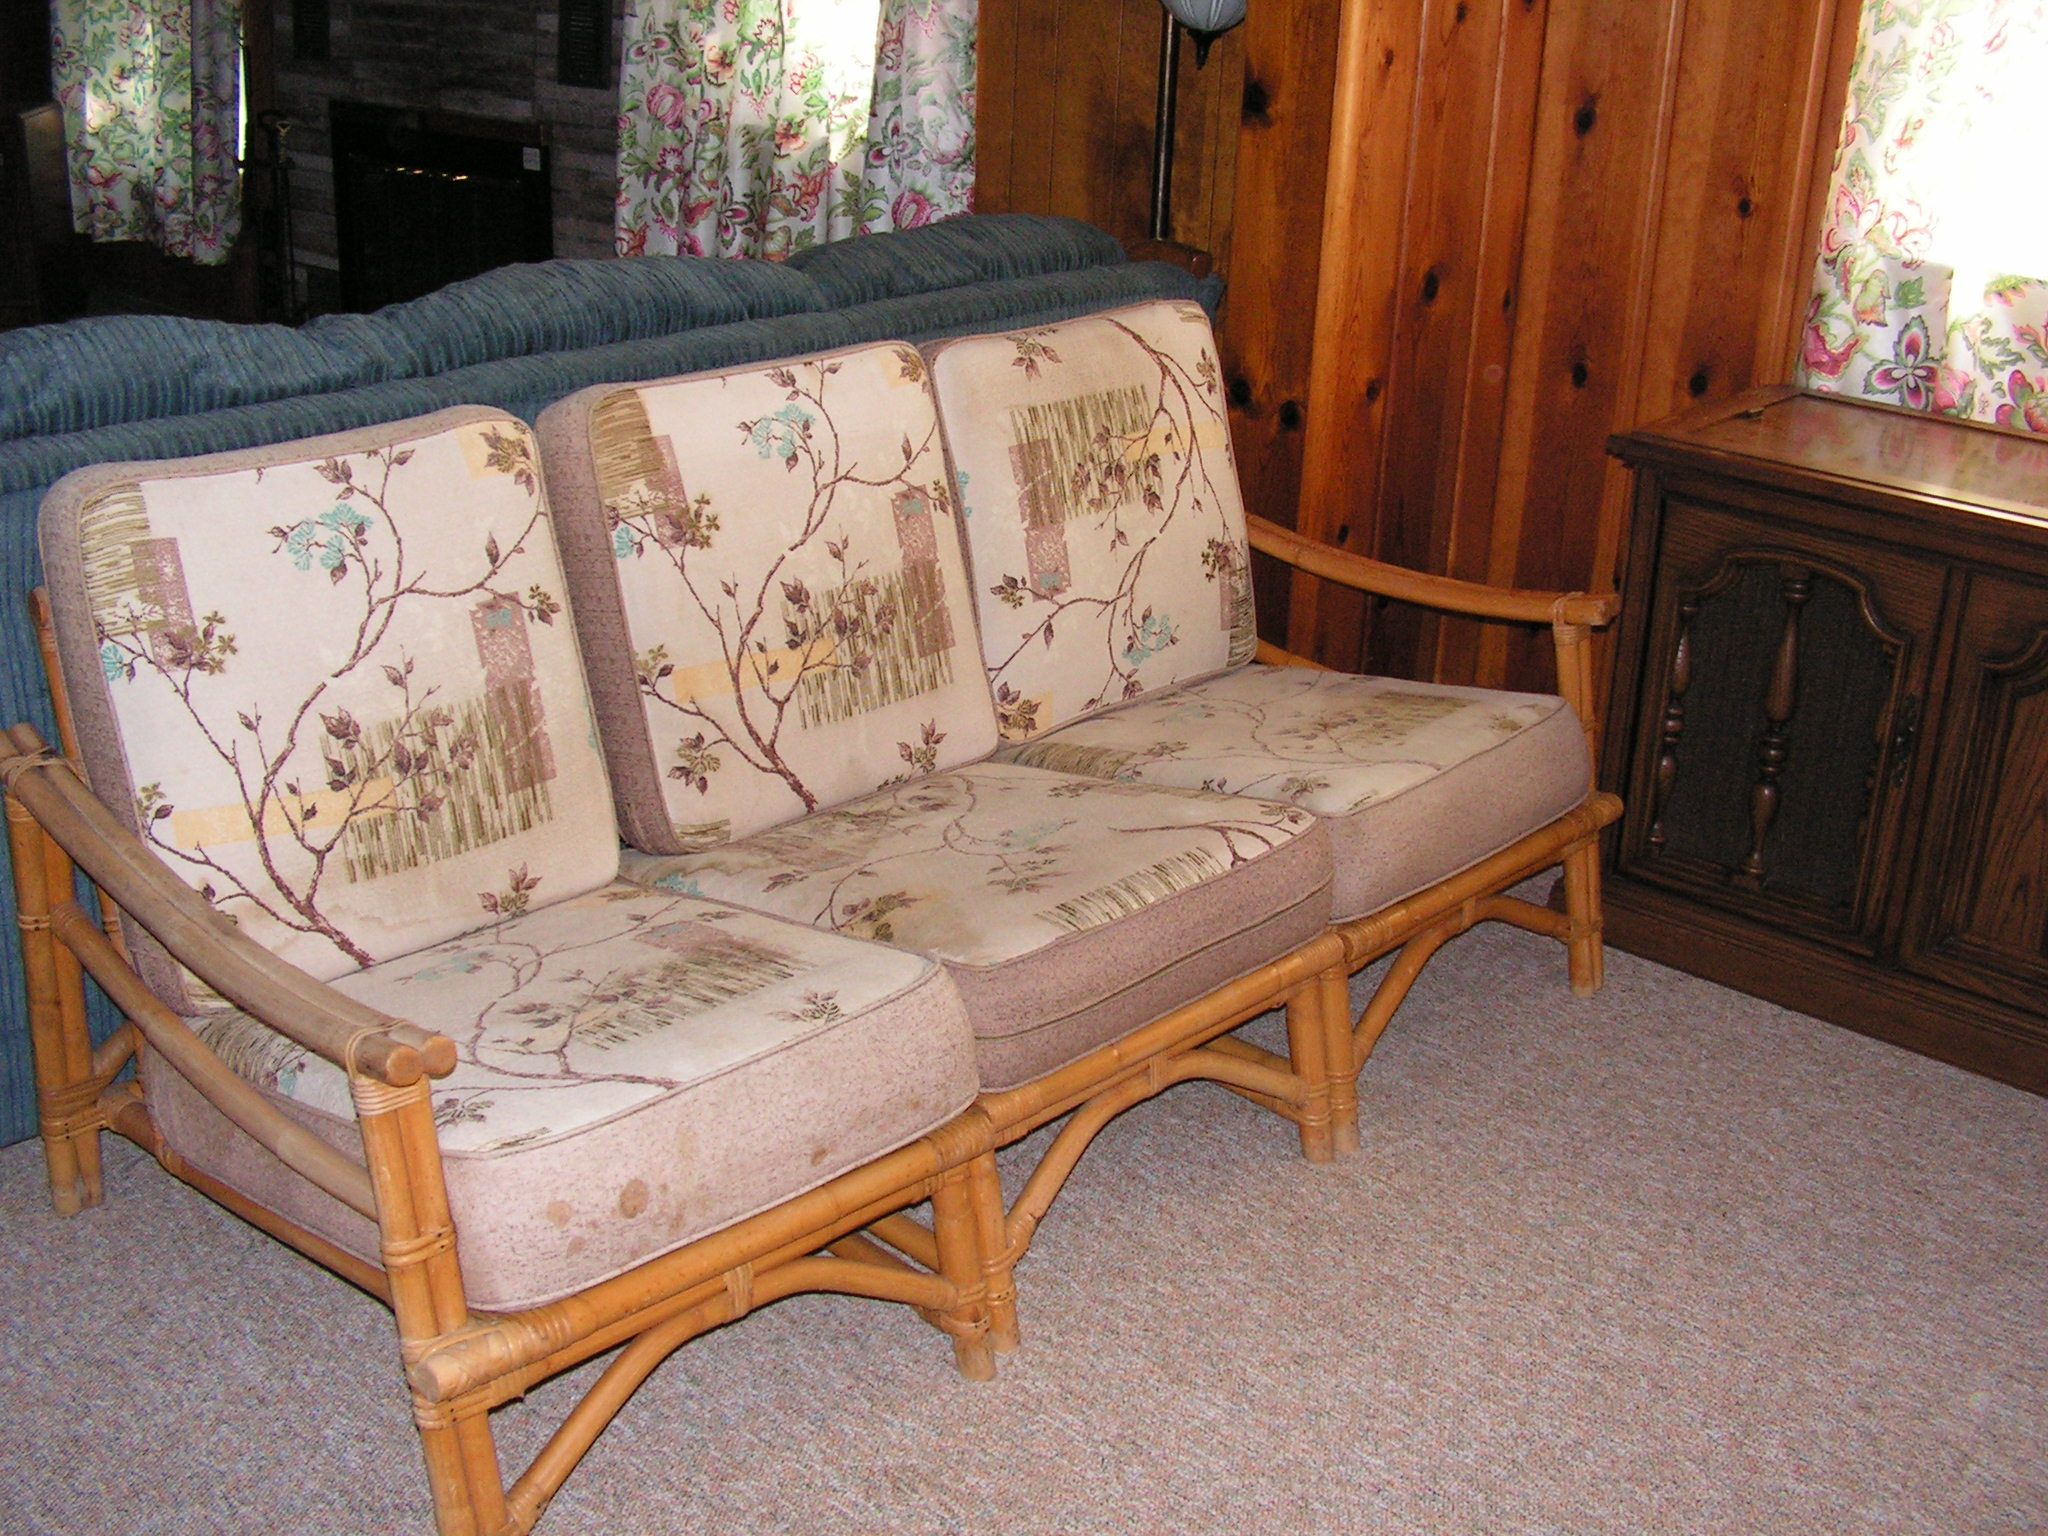 Uncategorized Bamboo Couch lucyslots garage is 1 lakes and cocktails bamboo couch chair cocktail table set in sale houghton lake